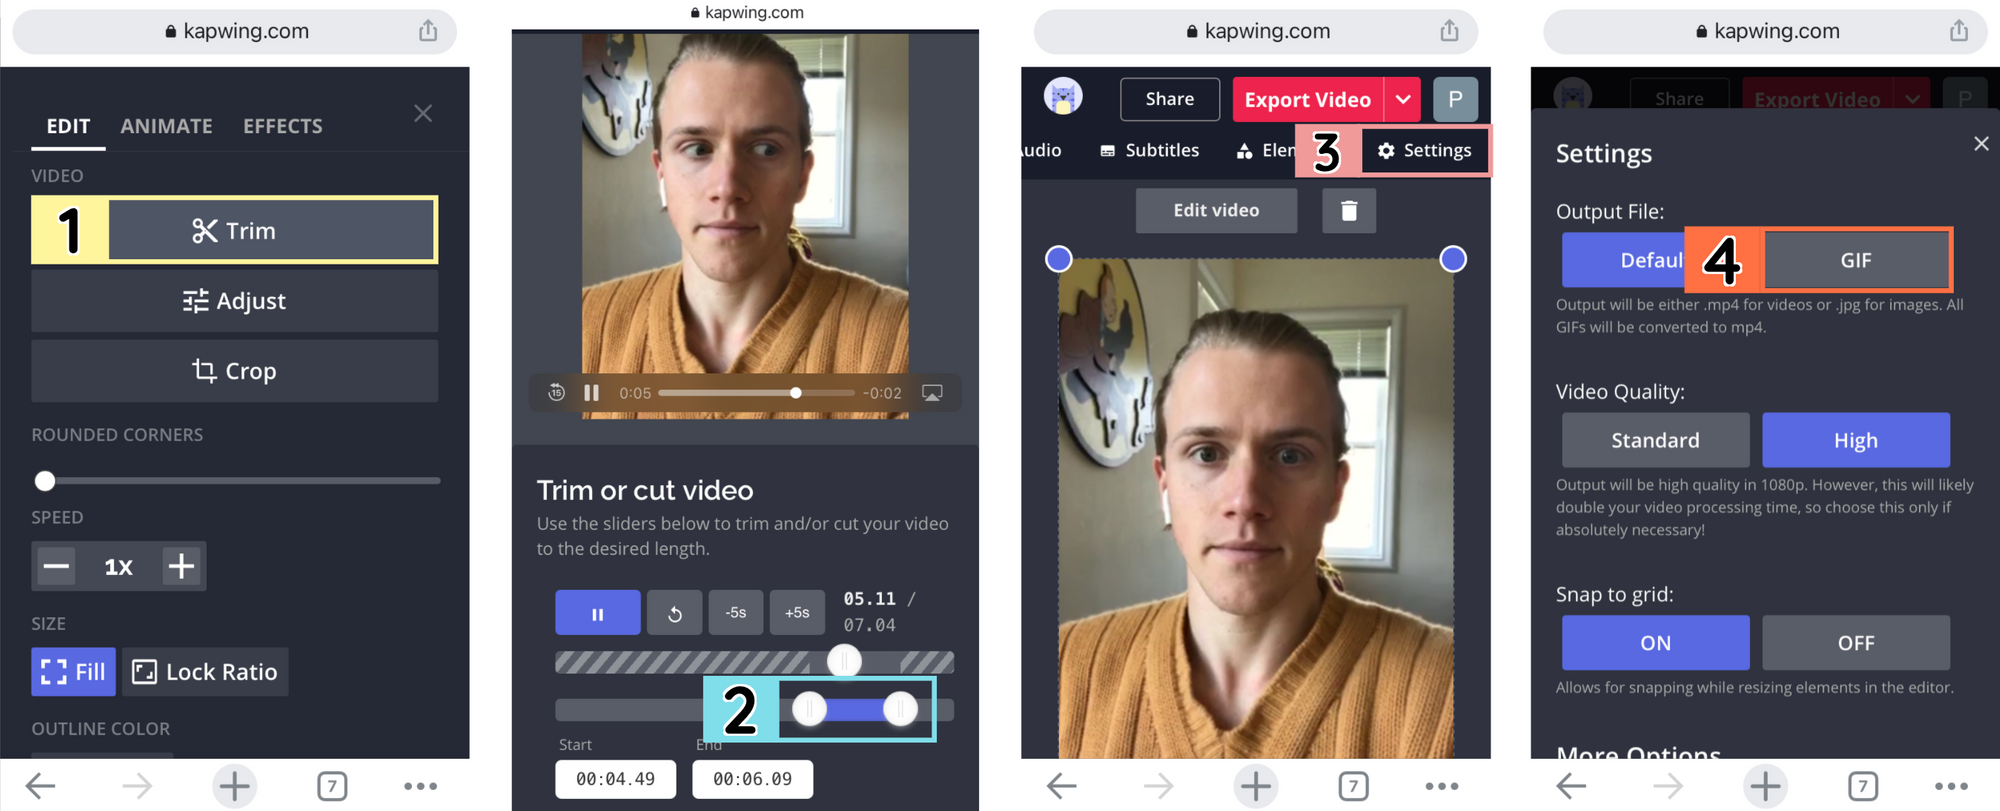 Screenshots from the mobile Kapwing Studio, demonstrating how to trim a video and export it as a GIF.